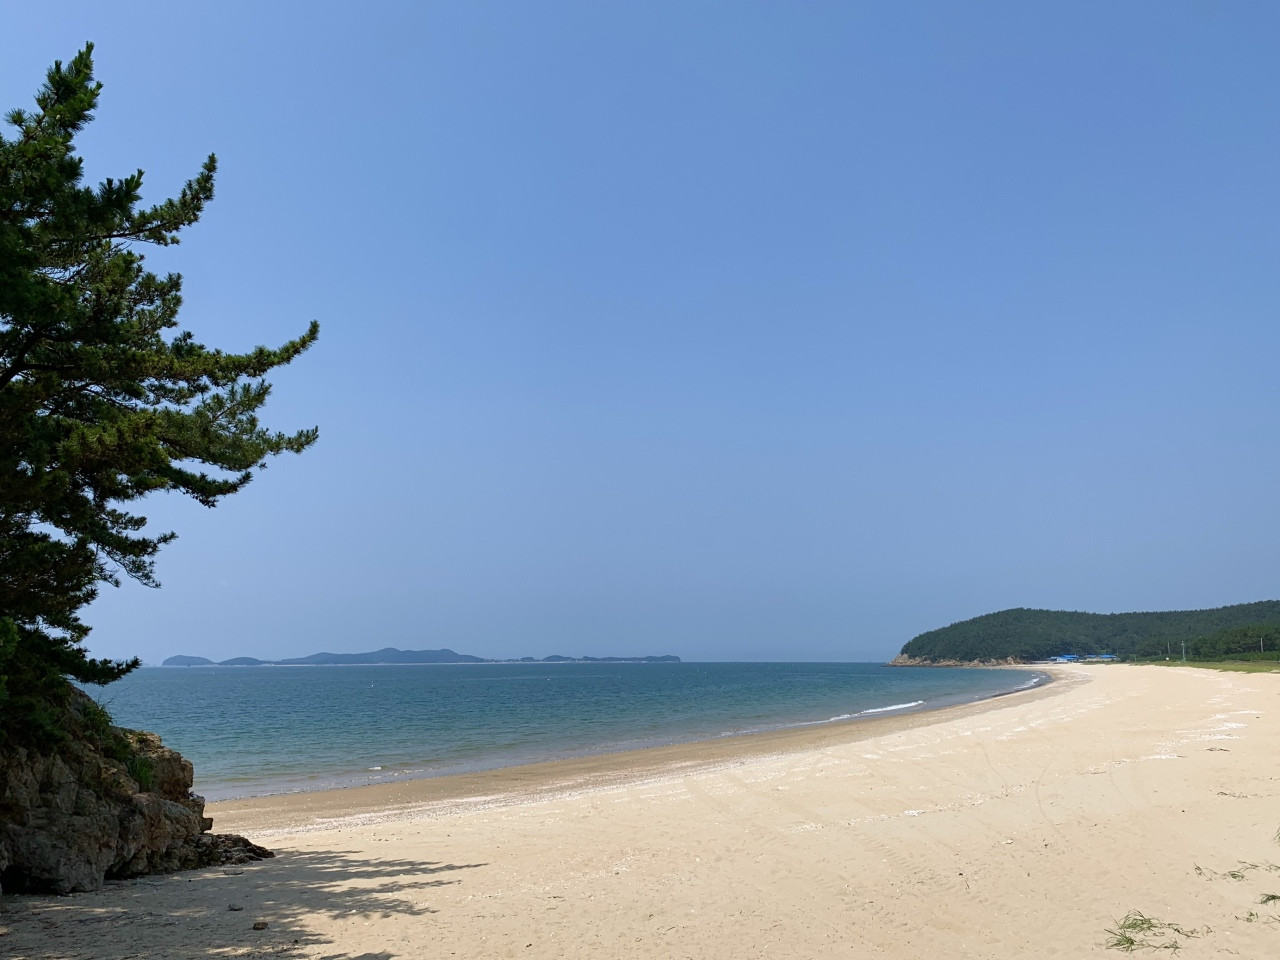 Taean offers idyllic beach getaway in COVD-19 times